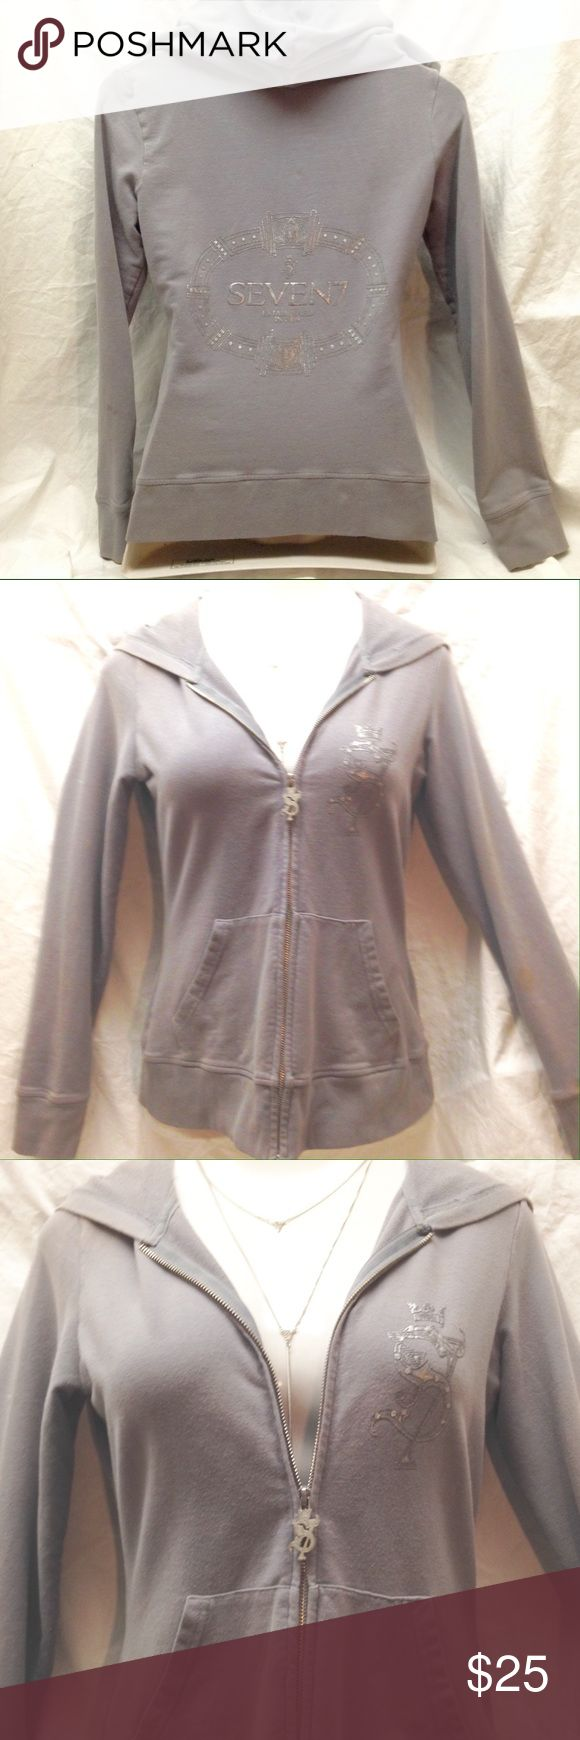 Seven for all Mankind zip up hoodie Seven for all mankind designer women's zip up gray hoodie with a silver metallic design on the back  Size medium - true to size  Good condition just one small stained on the left arm as pictured     🎀Free gift with every shipment 🎀 Seven for all Mankind Jackets & Coats